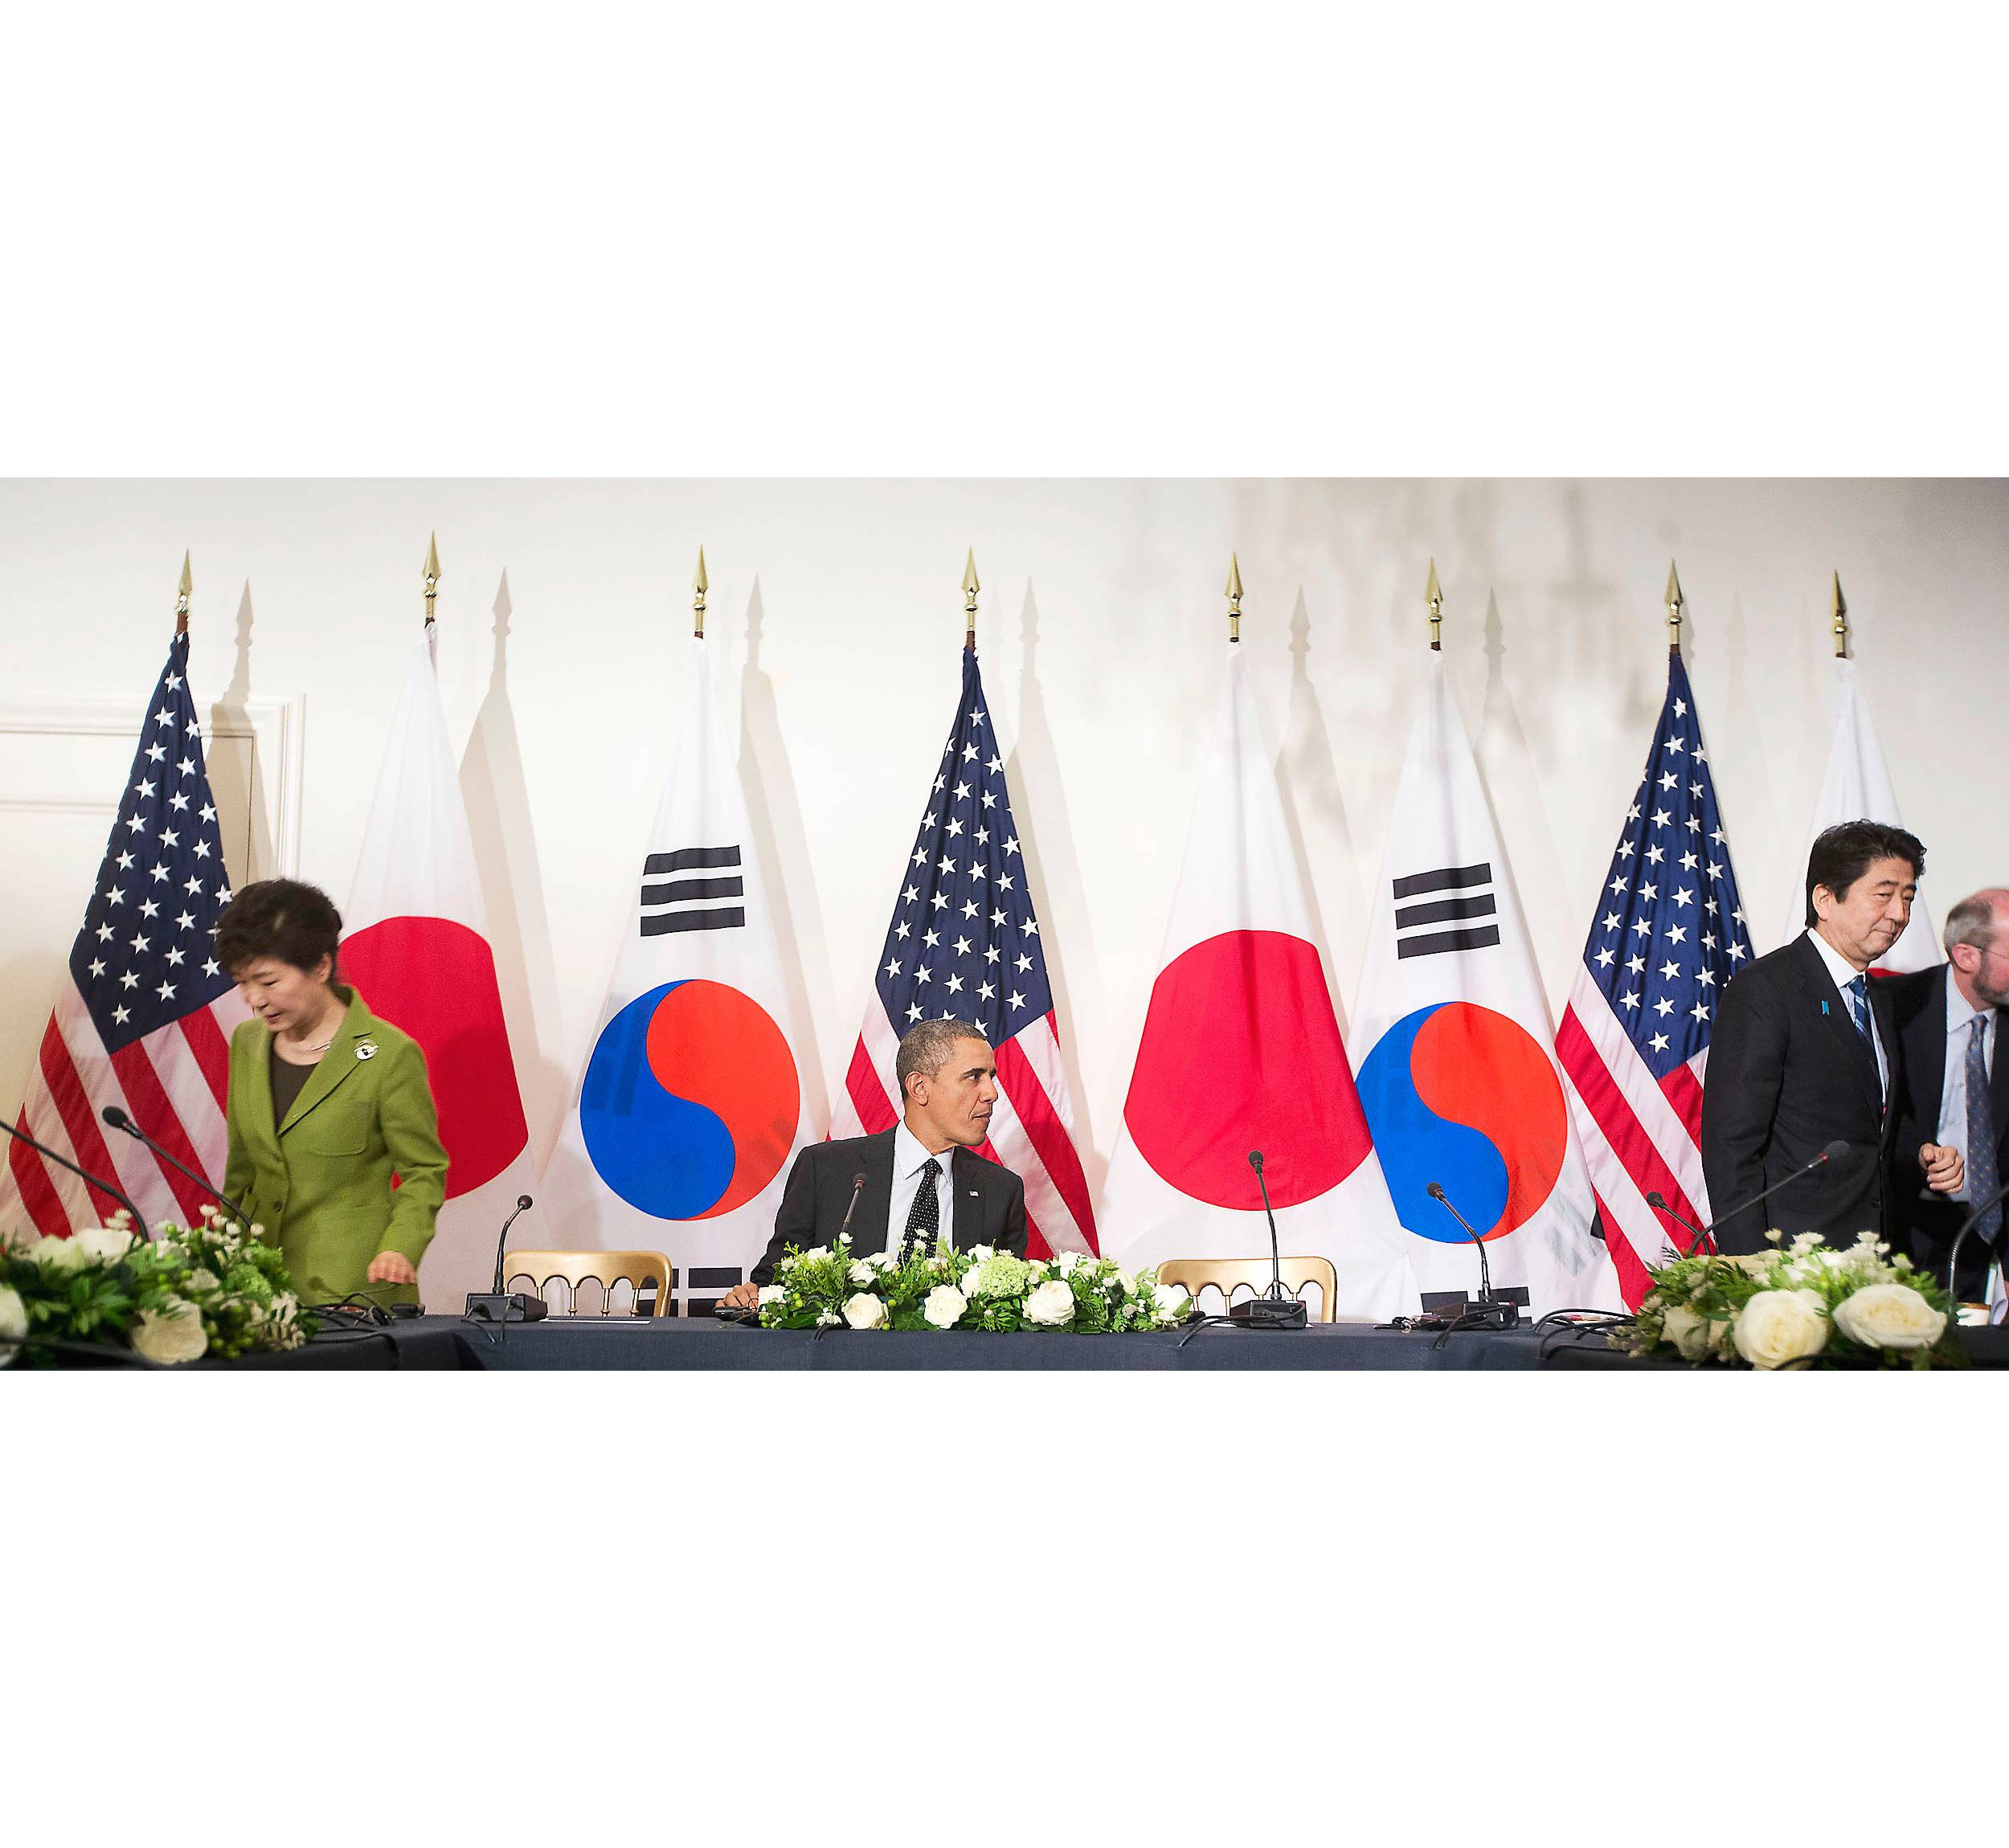 Korean President Park Geun-hye and Japanese Prime Minister Shinzo Abe leave U.S. President Barack Obama from opposite sides of the table after a photo opportunity at a nuclear summit at The Hague on March 25.